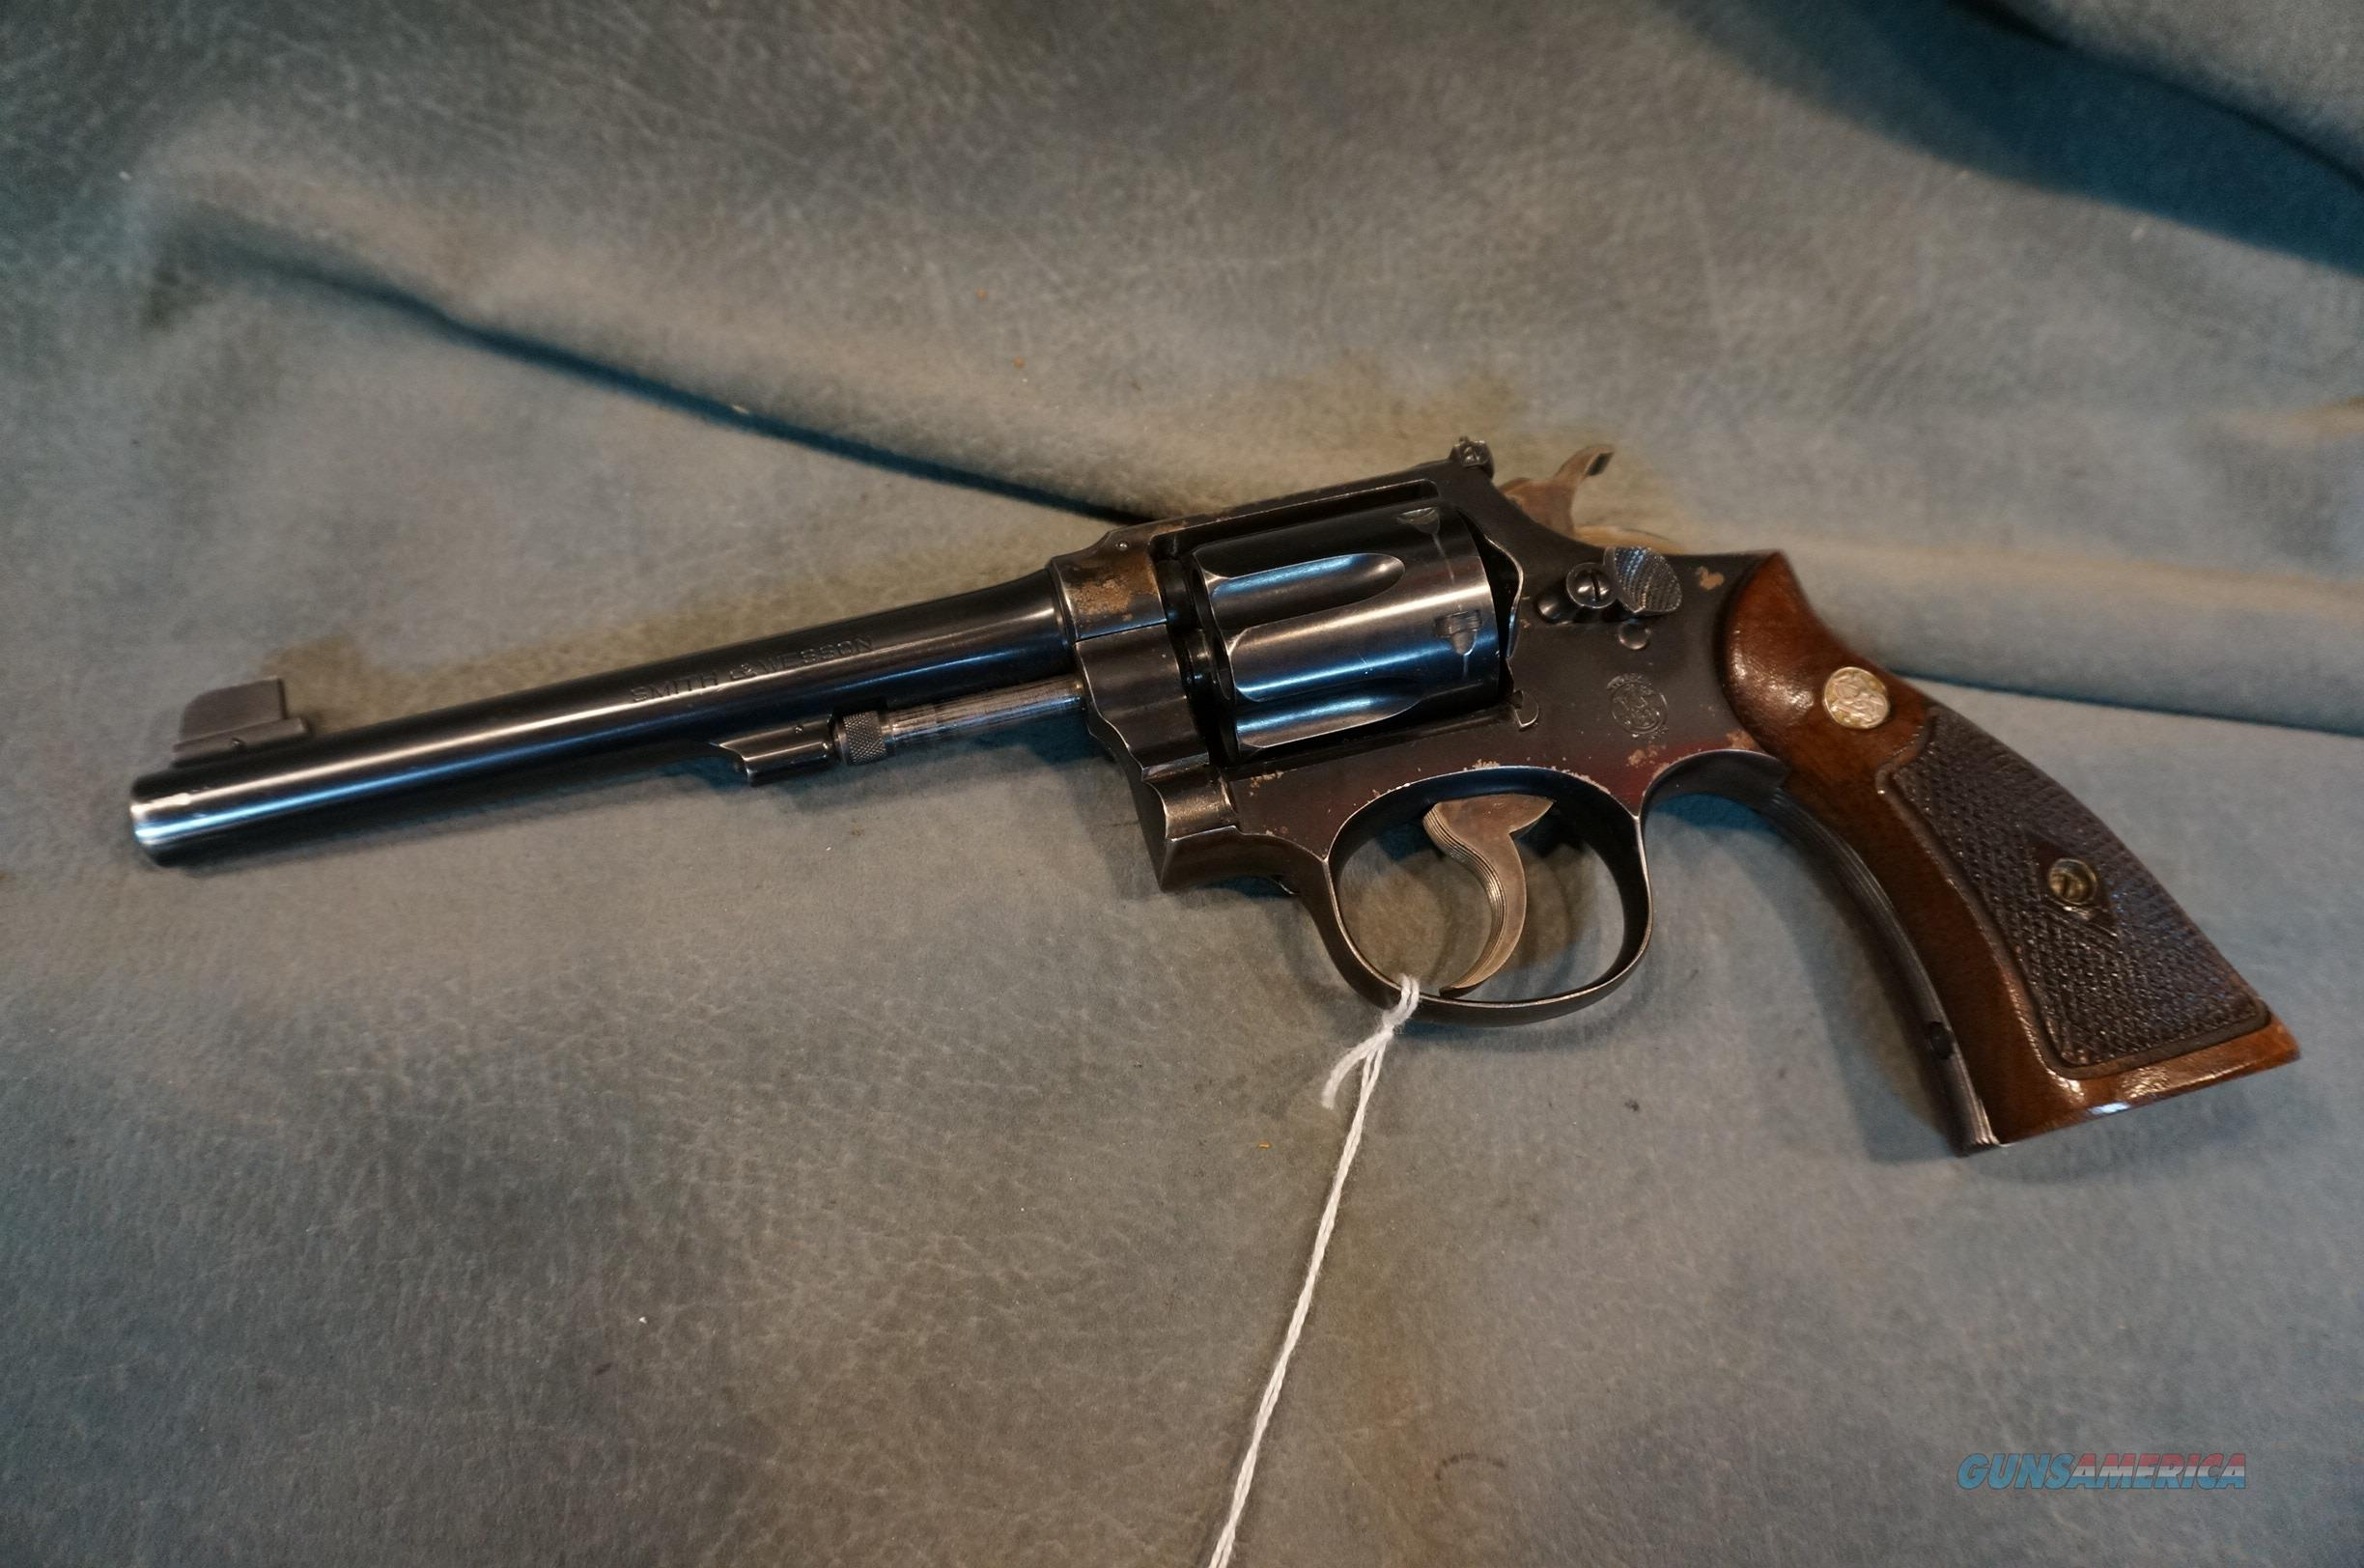 S+W Target Model M+P 1905 4th change 38sp  Guns > Pistols > Smith & Wesson Revolvers > Pre-1945